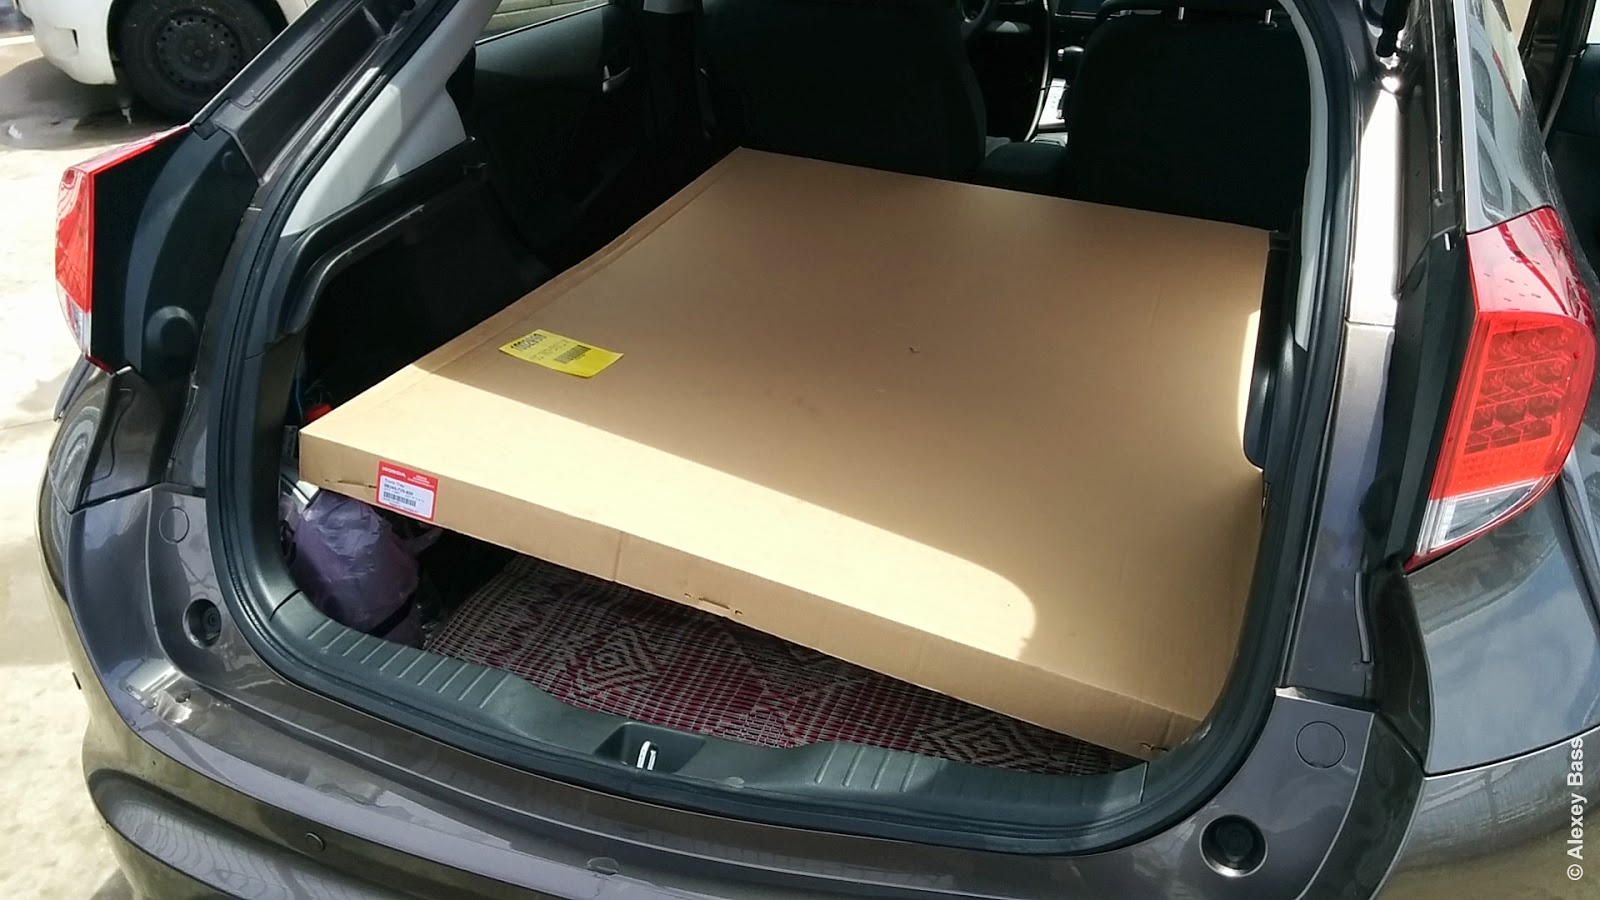 It come in big big carton box that I somehow put to the back with seats  folded.